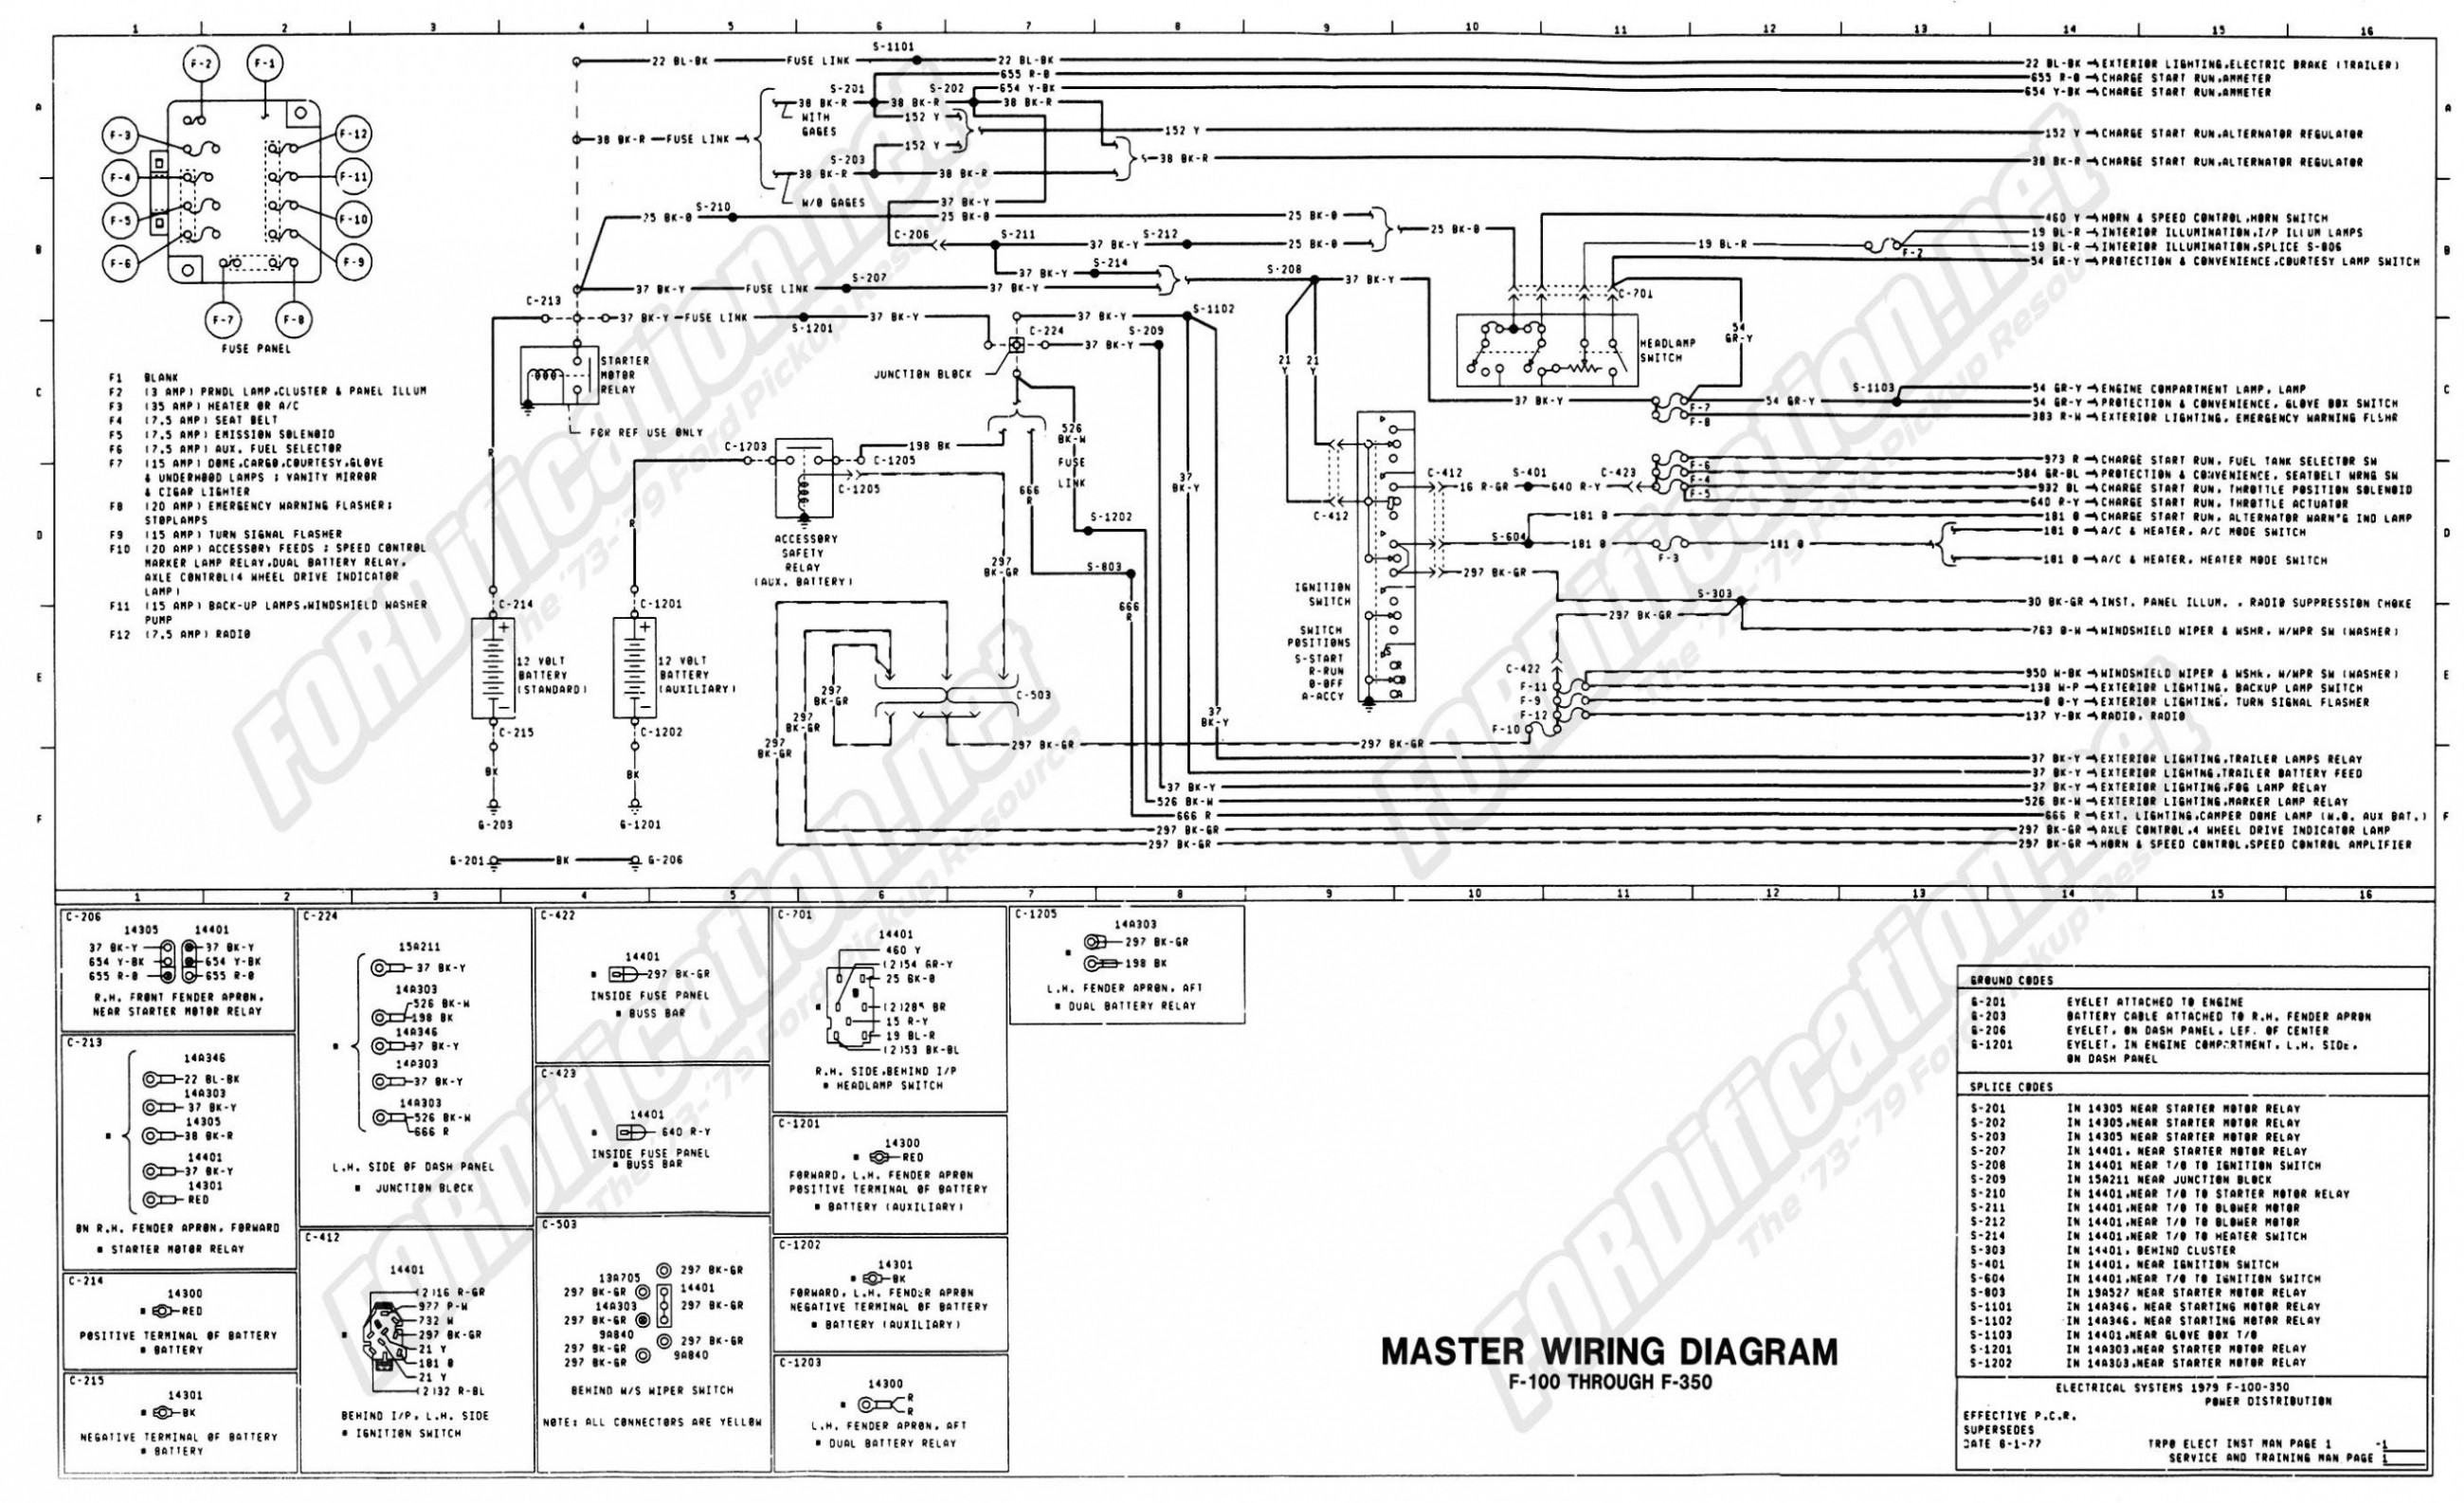 1991 ford F150 Engine Diagram ford F150 Starter solenoid Wiring Diagram — Daytonva150 Of 1991 ford F150 Engine Diagram